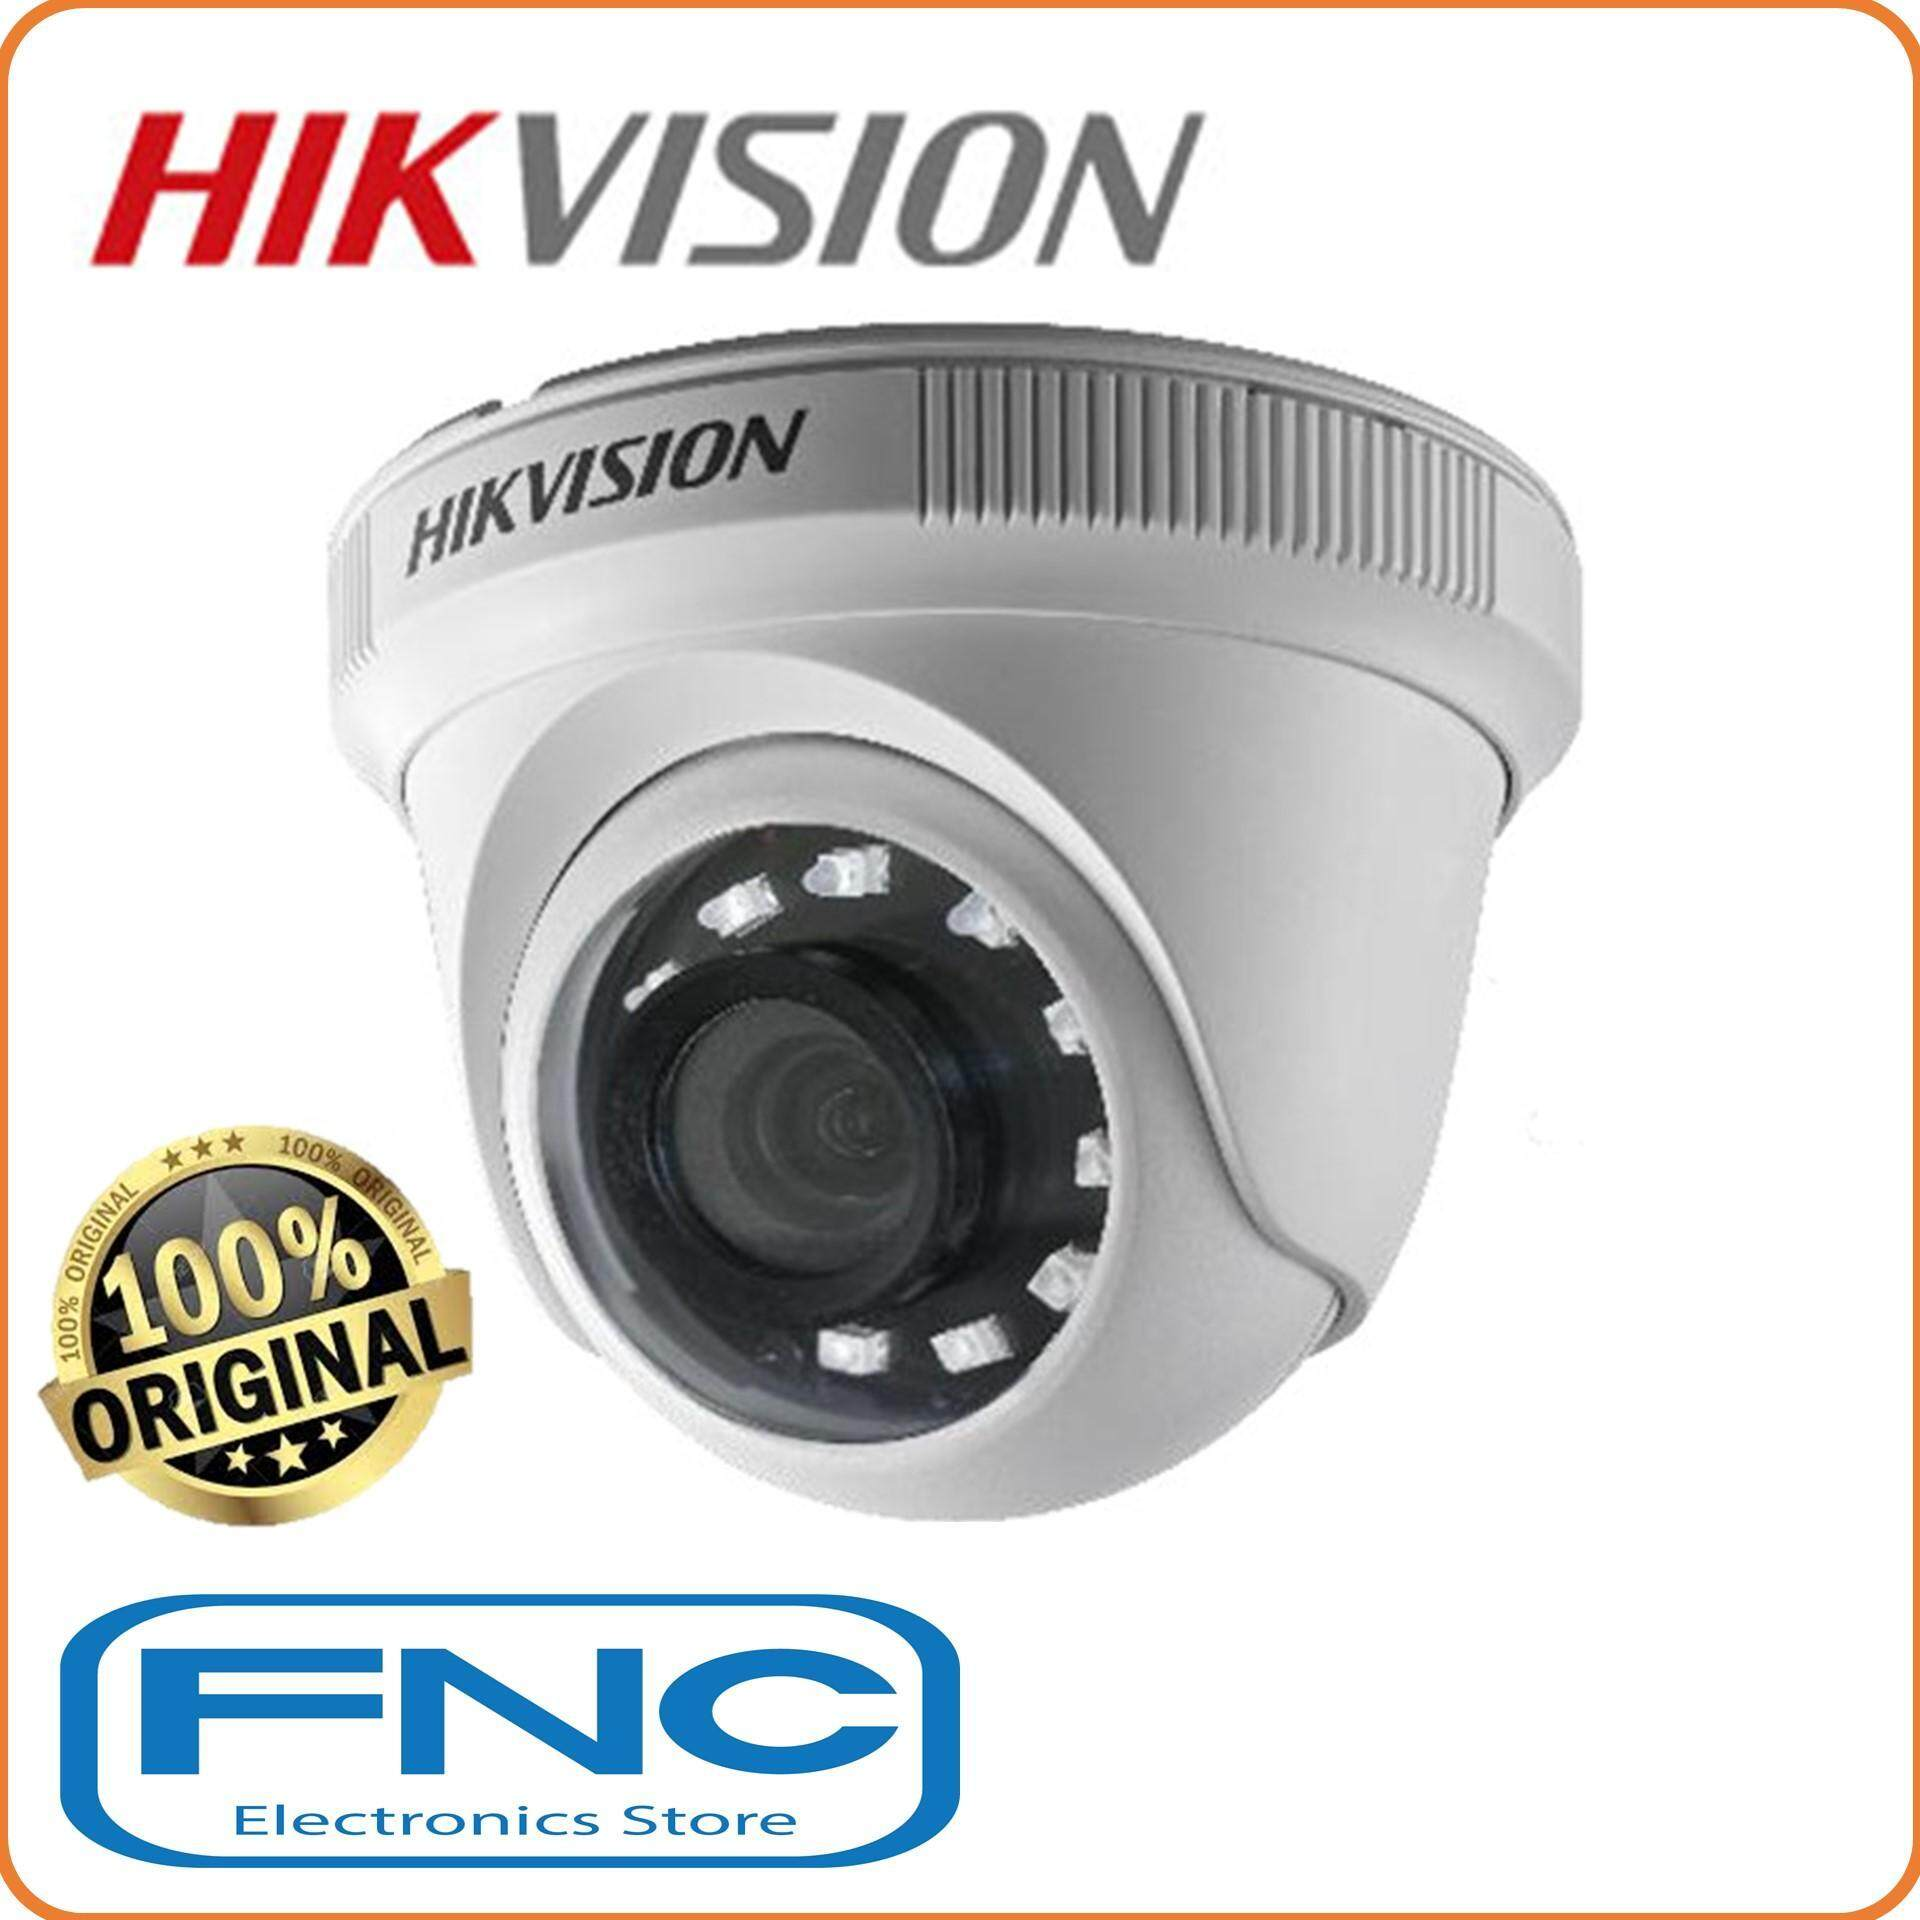 Hikvision Ds-2ce56d0t-Cf Analog 2mp 1080p Fixed 3.6mm 4 In 1 Switchable Tvi/ahd/cvi/cvbs Ir Full Hd Dome Camera By Fnc Electronics Store.